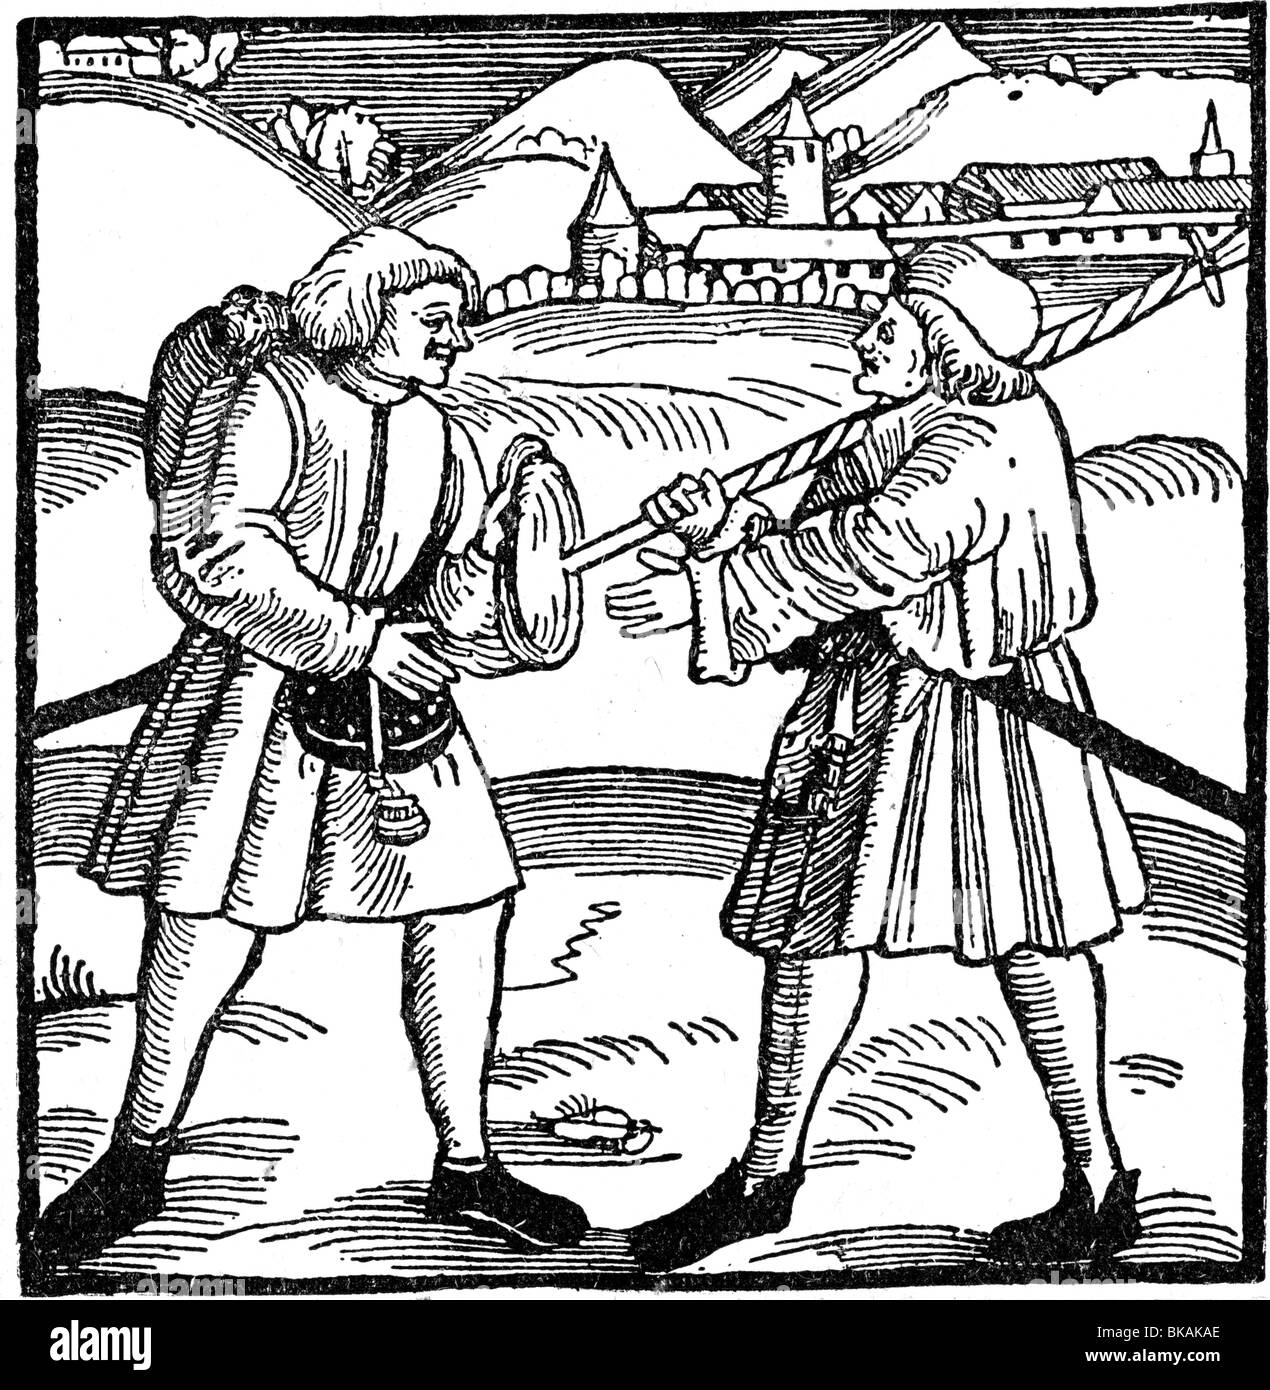 """luther in relation to the peasants When luther wrote and spoke of the """"freedom of the christian,"""" he was talking  about man's relation to god the peasants took it to mean that they were free to."""